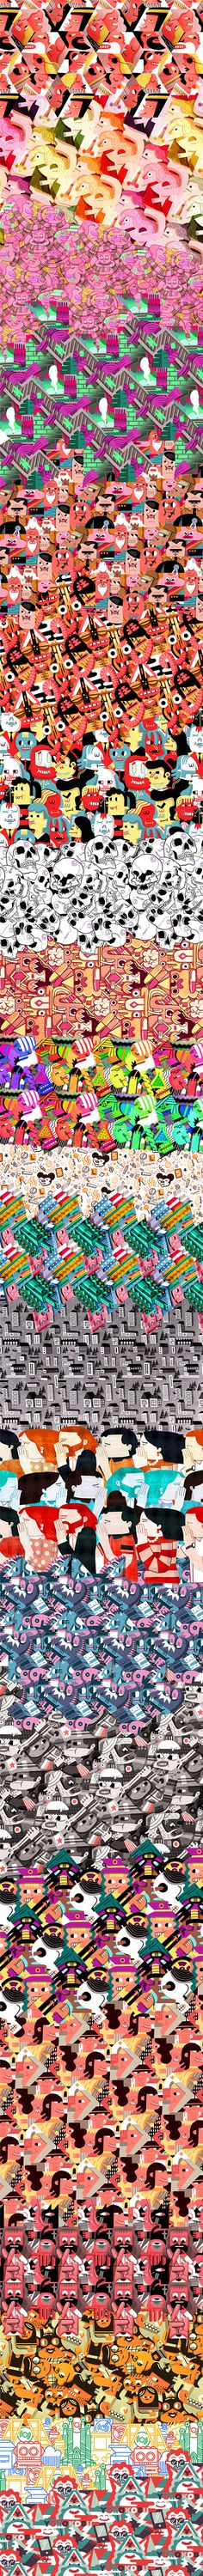 Patterns 2014 on Behance #abstract #pattern #repeat #illustration #colors